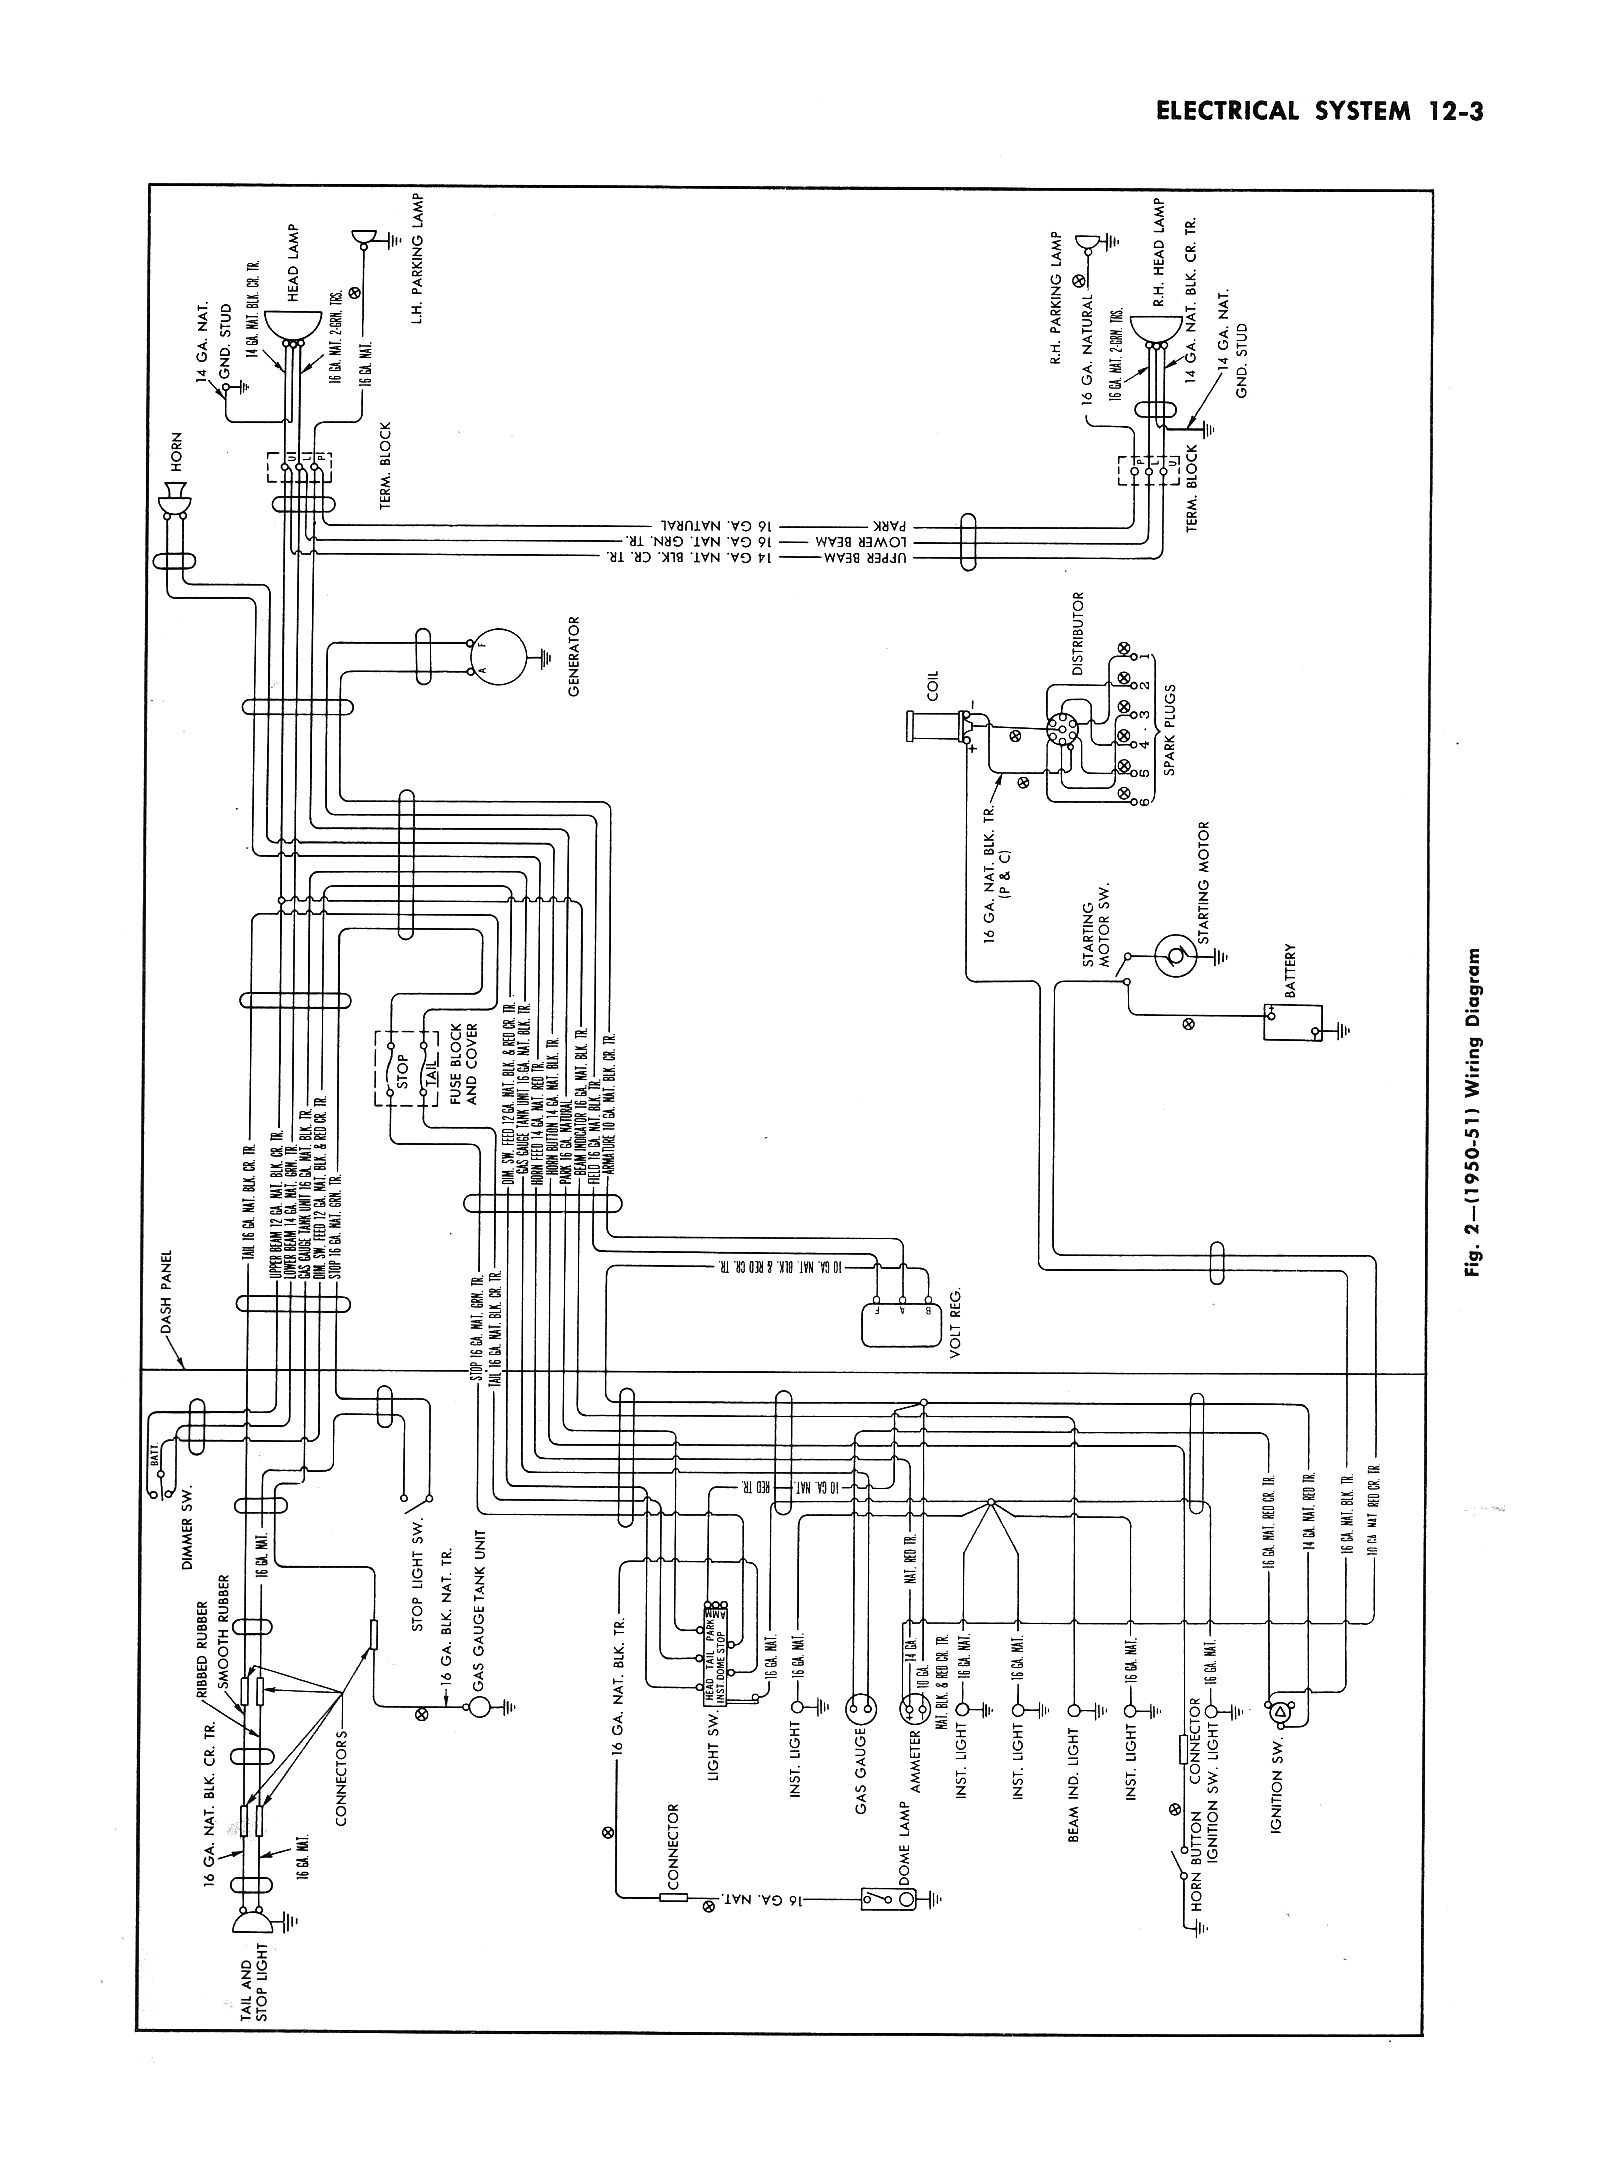 wiring diagram for a 1969 chevy truck wiring diagram for 1972 chevy truck